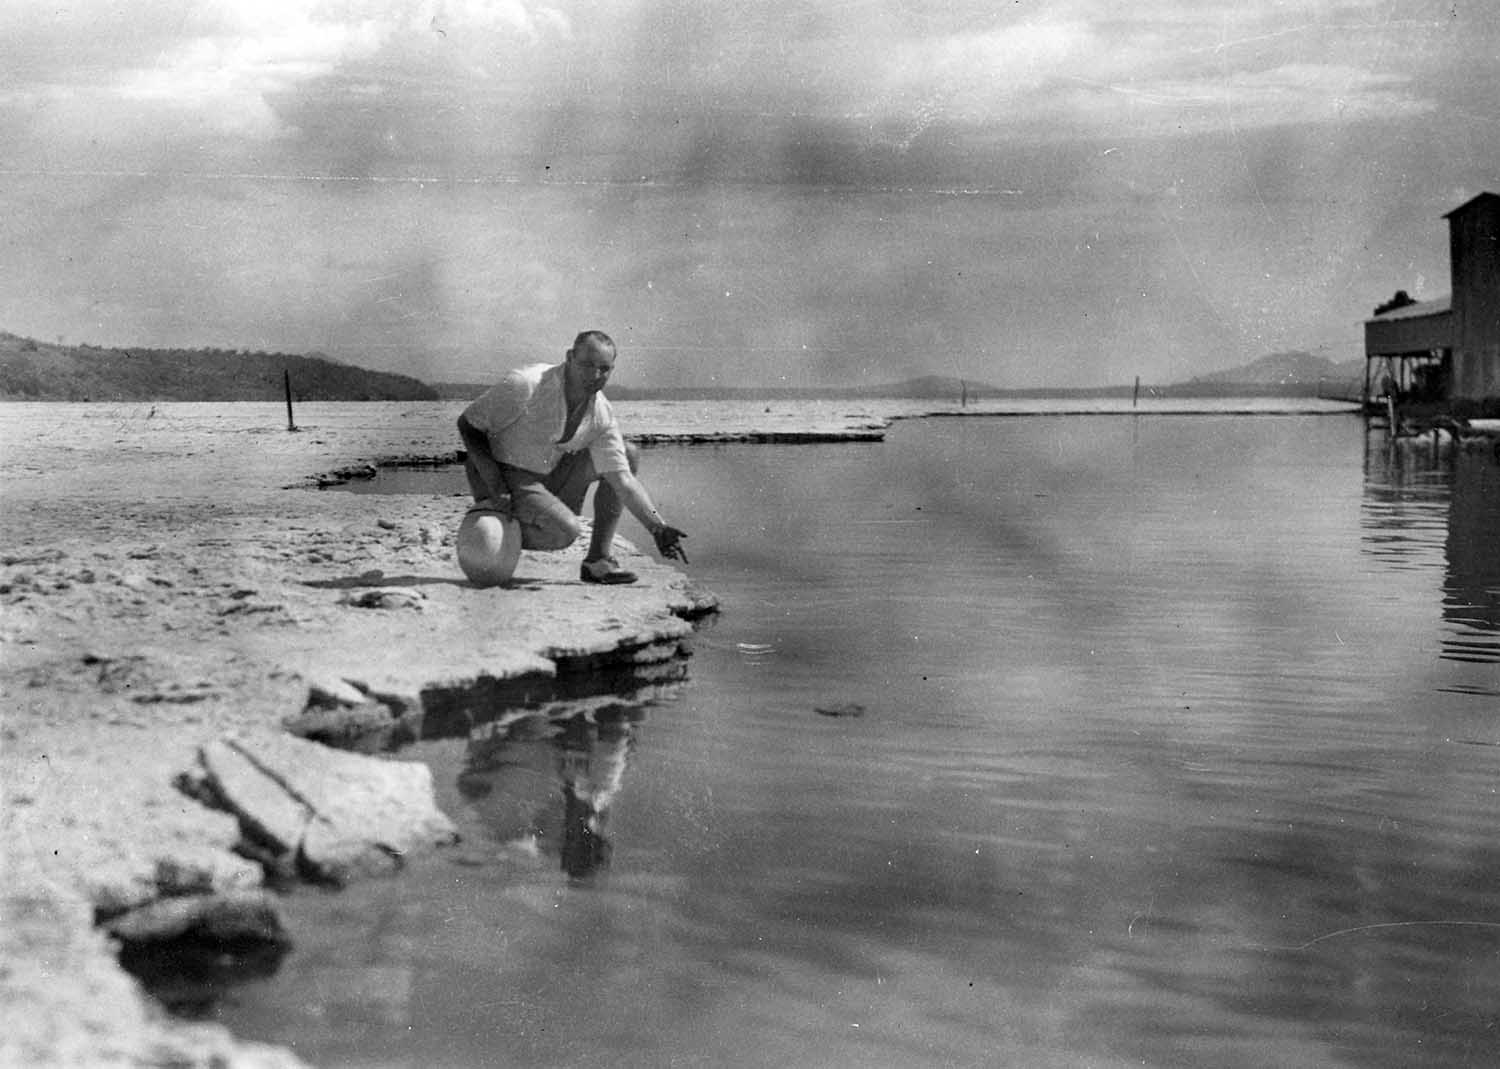 robert ripley at soda lake